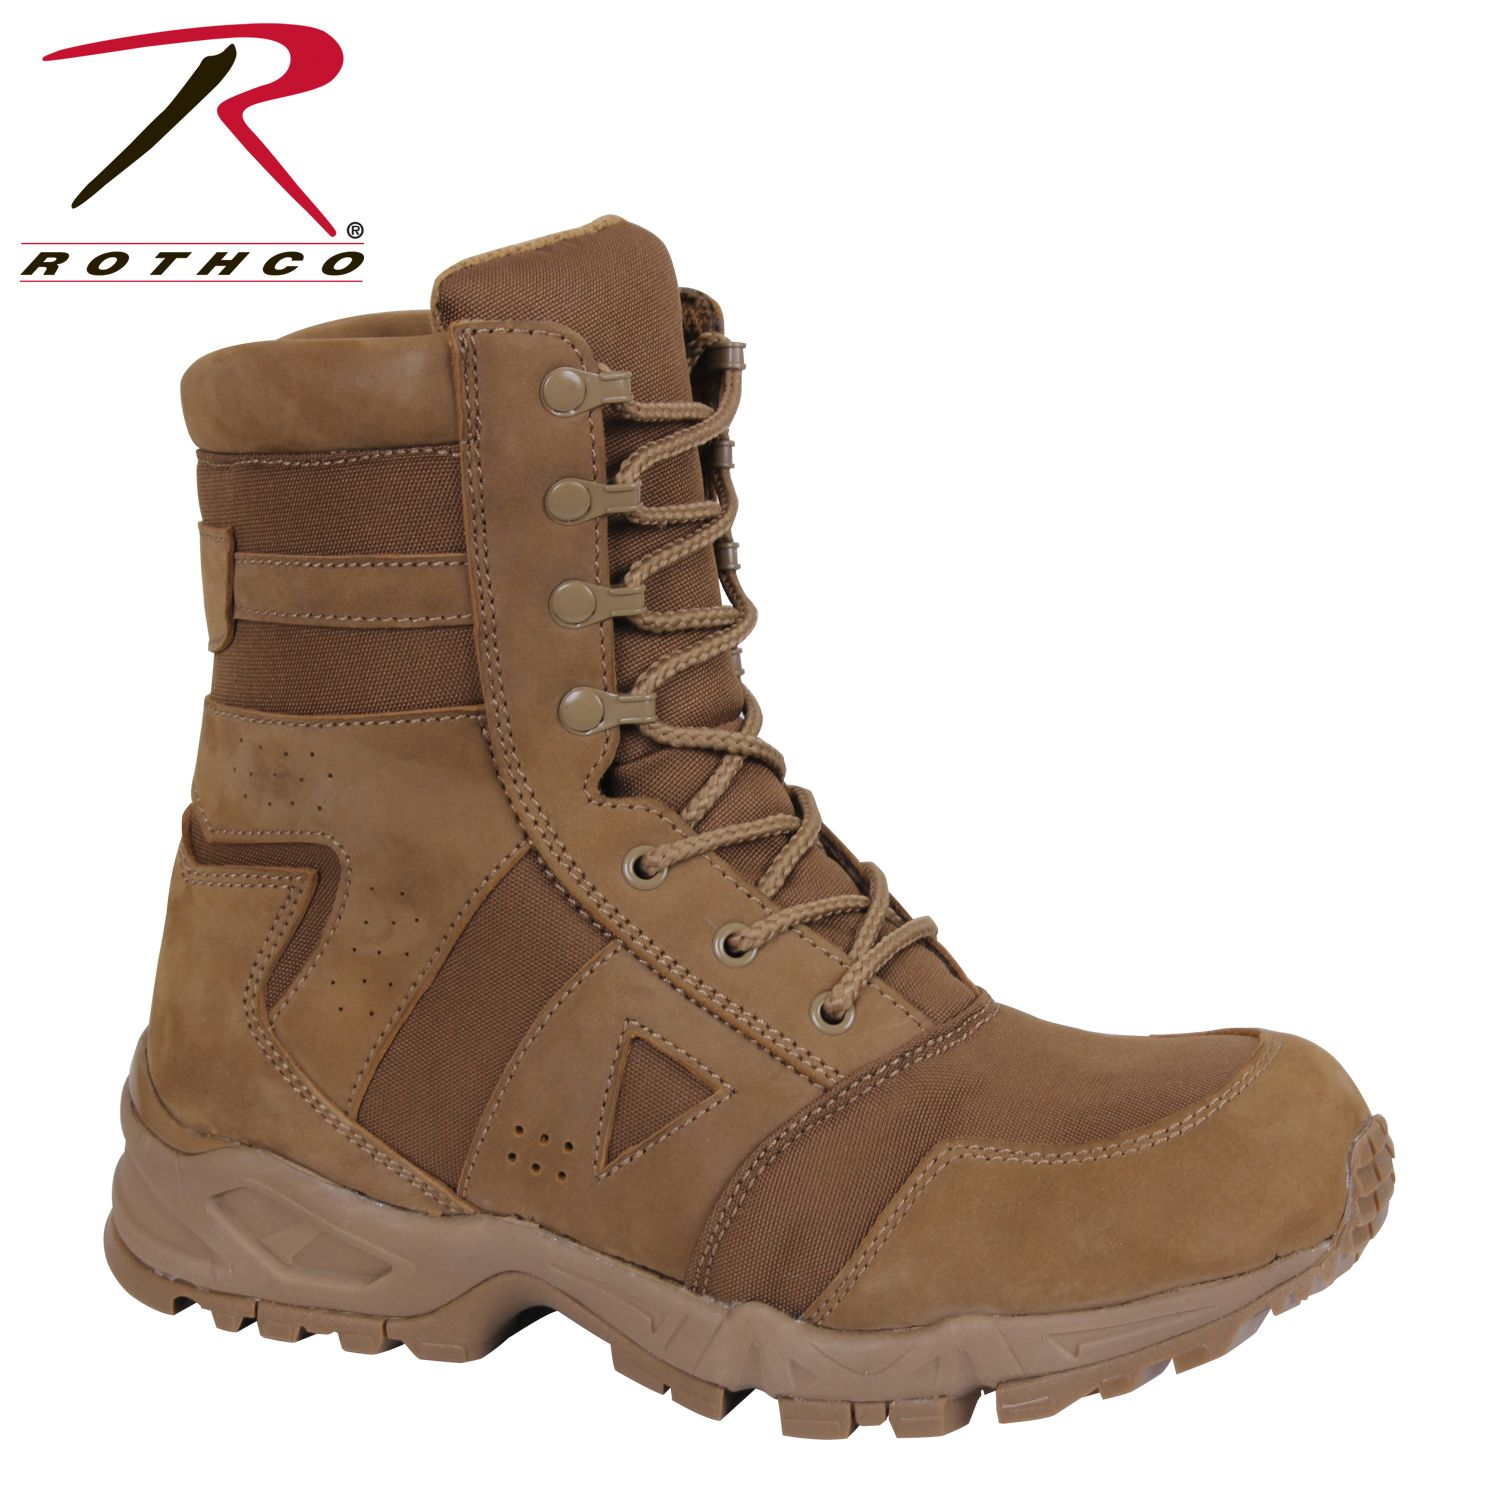 Ar 670 1 Coyote Brown Forced Entry Tactical Boot Boots Army Navy Store Combat Boots